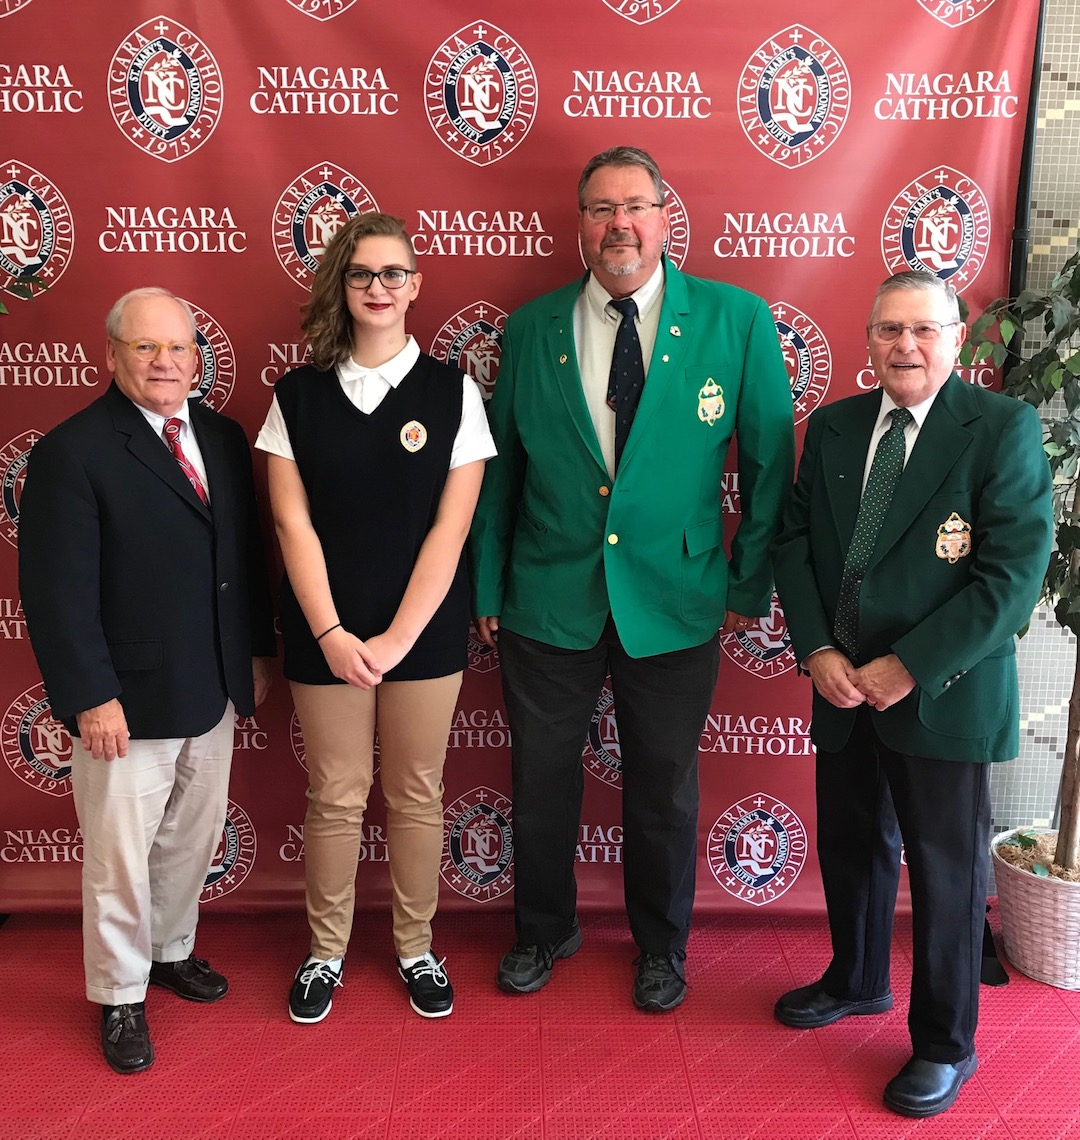 Pictured from left: Niagara Catholic President/Principal Bob Cluckey, AOH Scholarship recipient Courtney O'Gara, AOH President Kevin O'Brien and Chairman James Andrews.